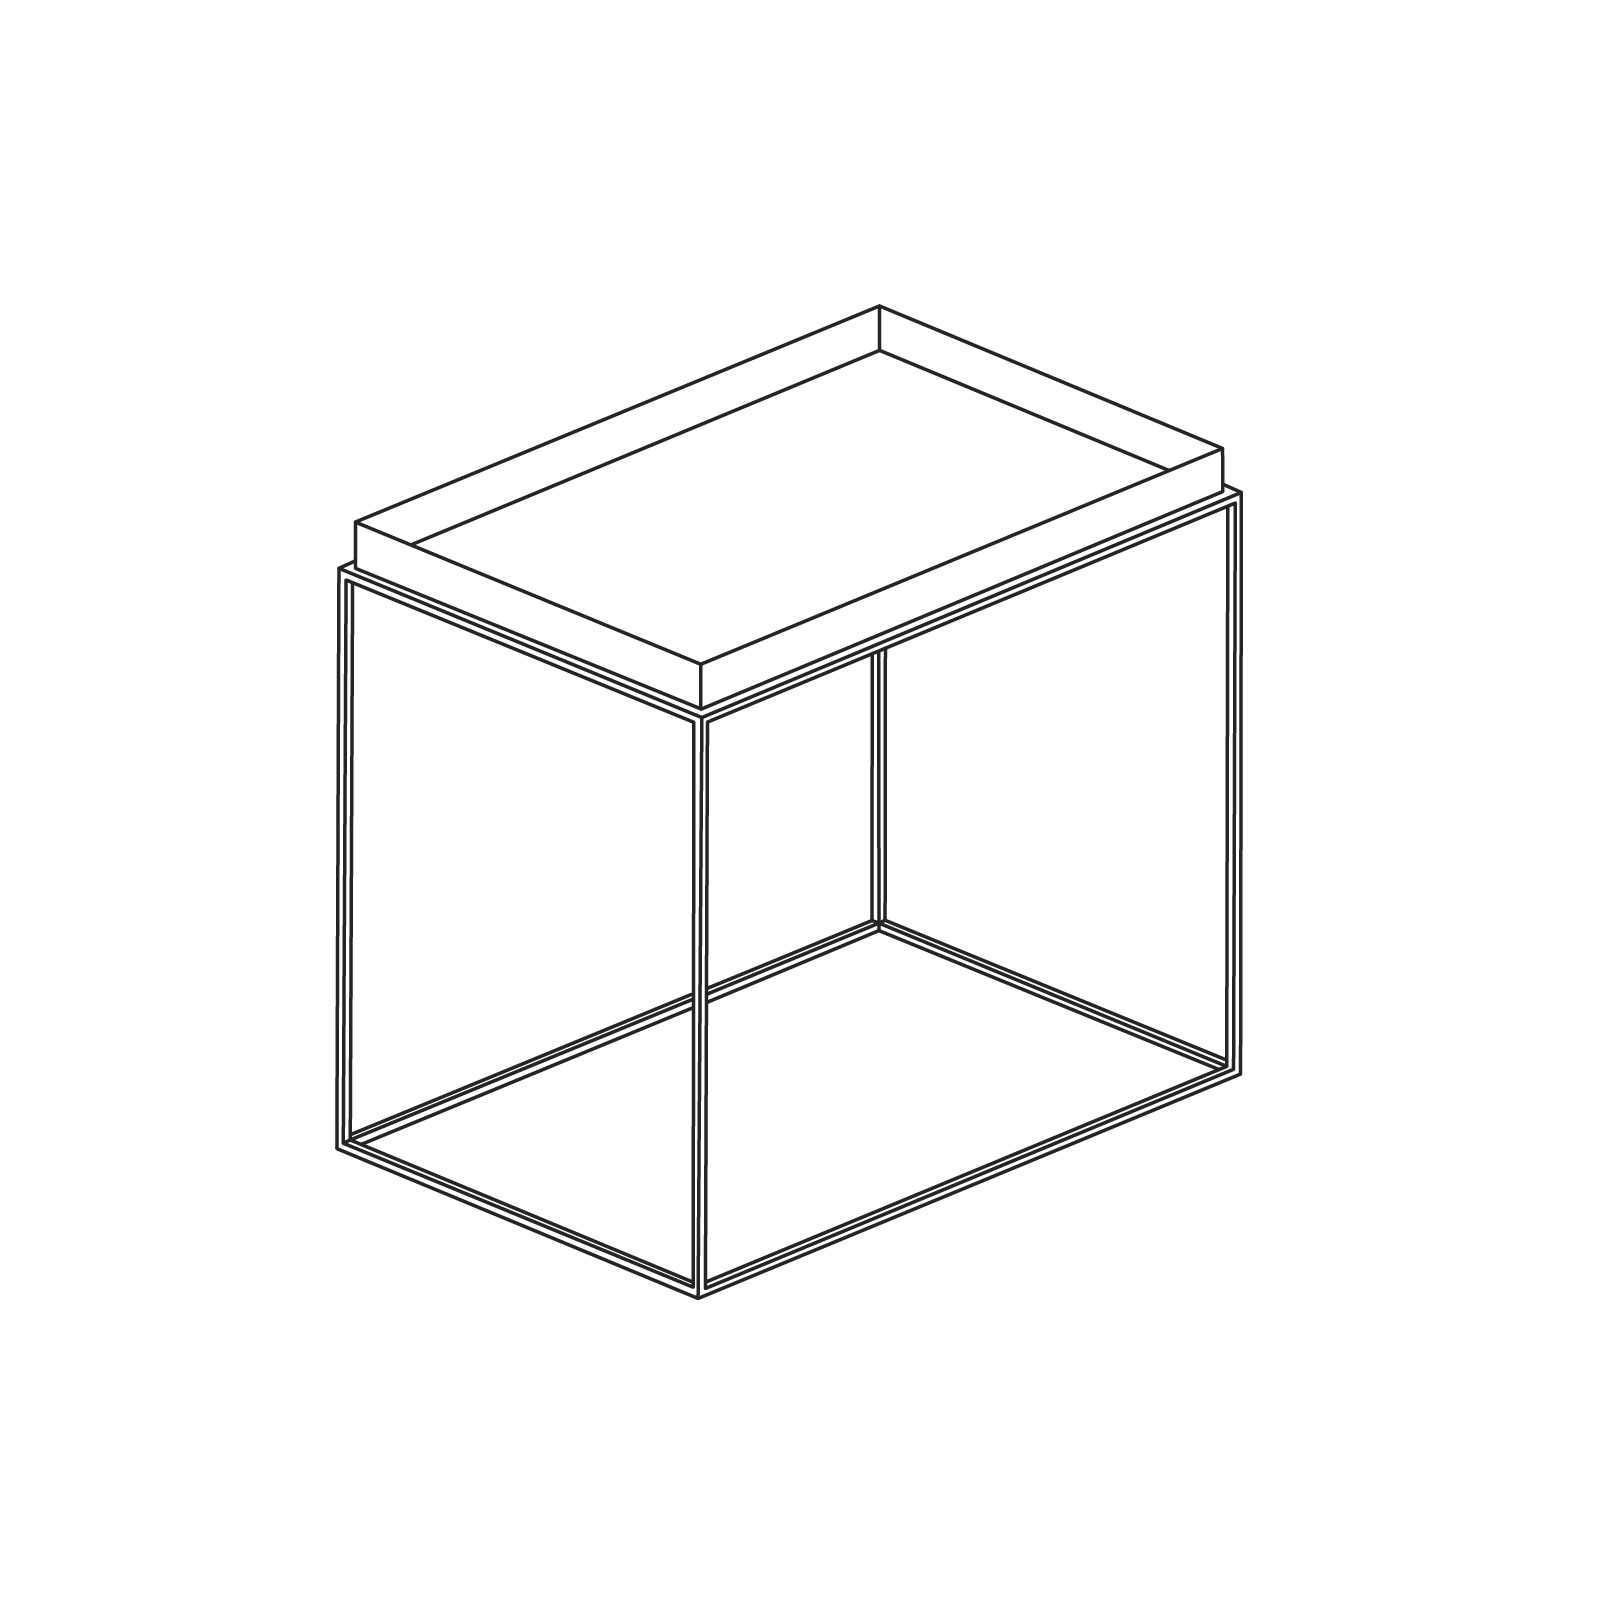 A line drawing of Tray Side Table–Rectangle.